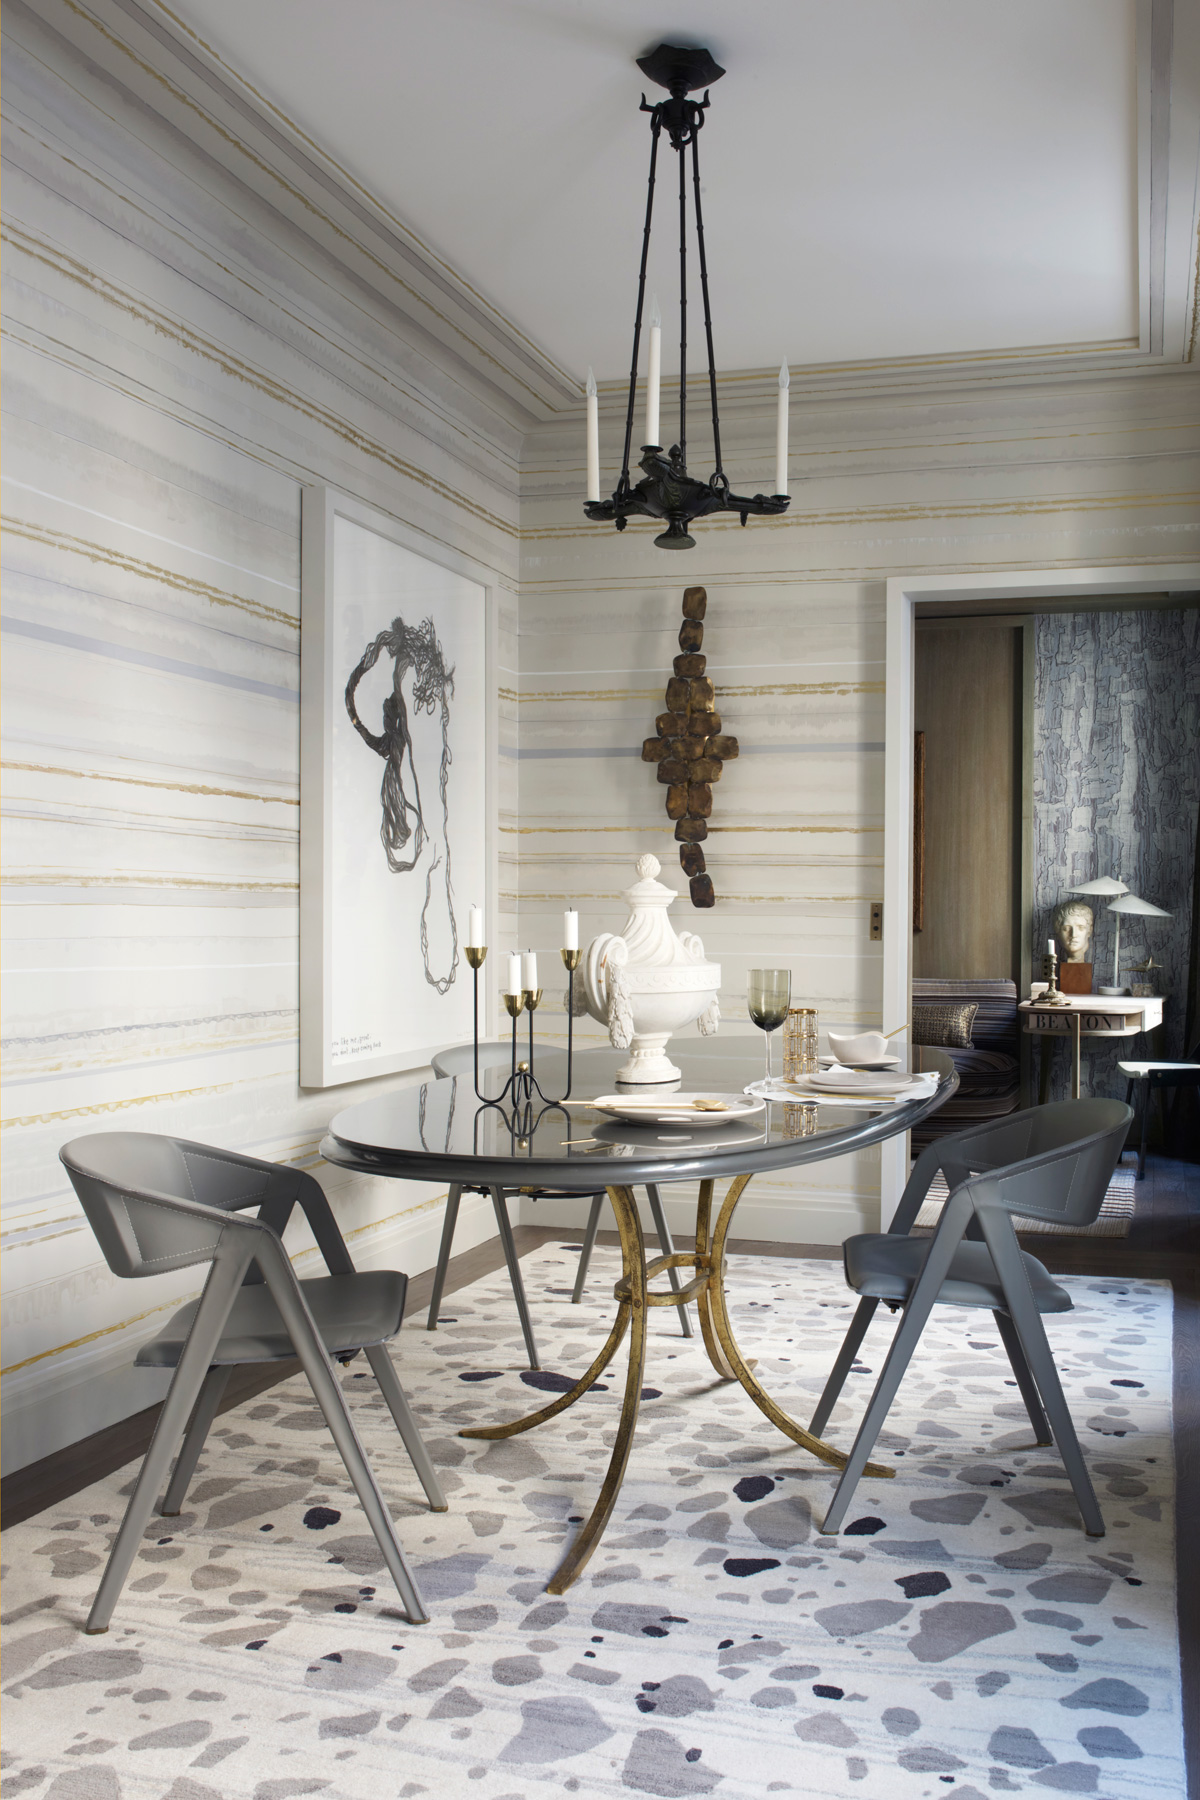 dining room by Jean Louis Deniot best dining room tables 10 of the best dining room tables for your home 1436466113 edc090112deniot09